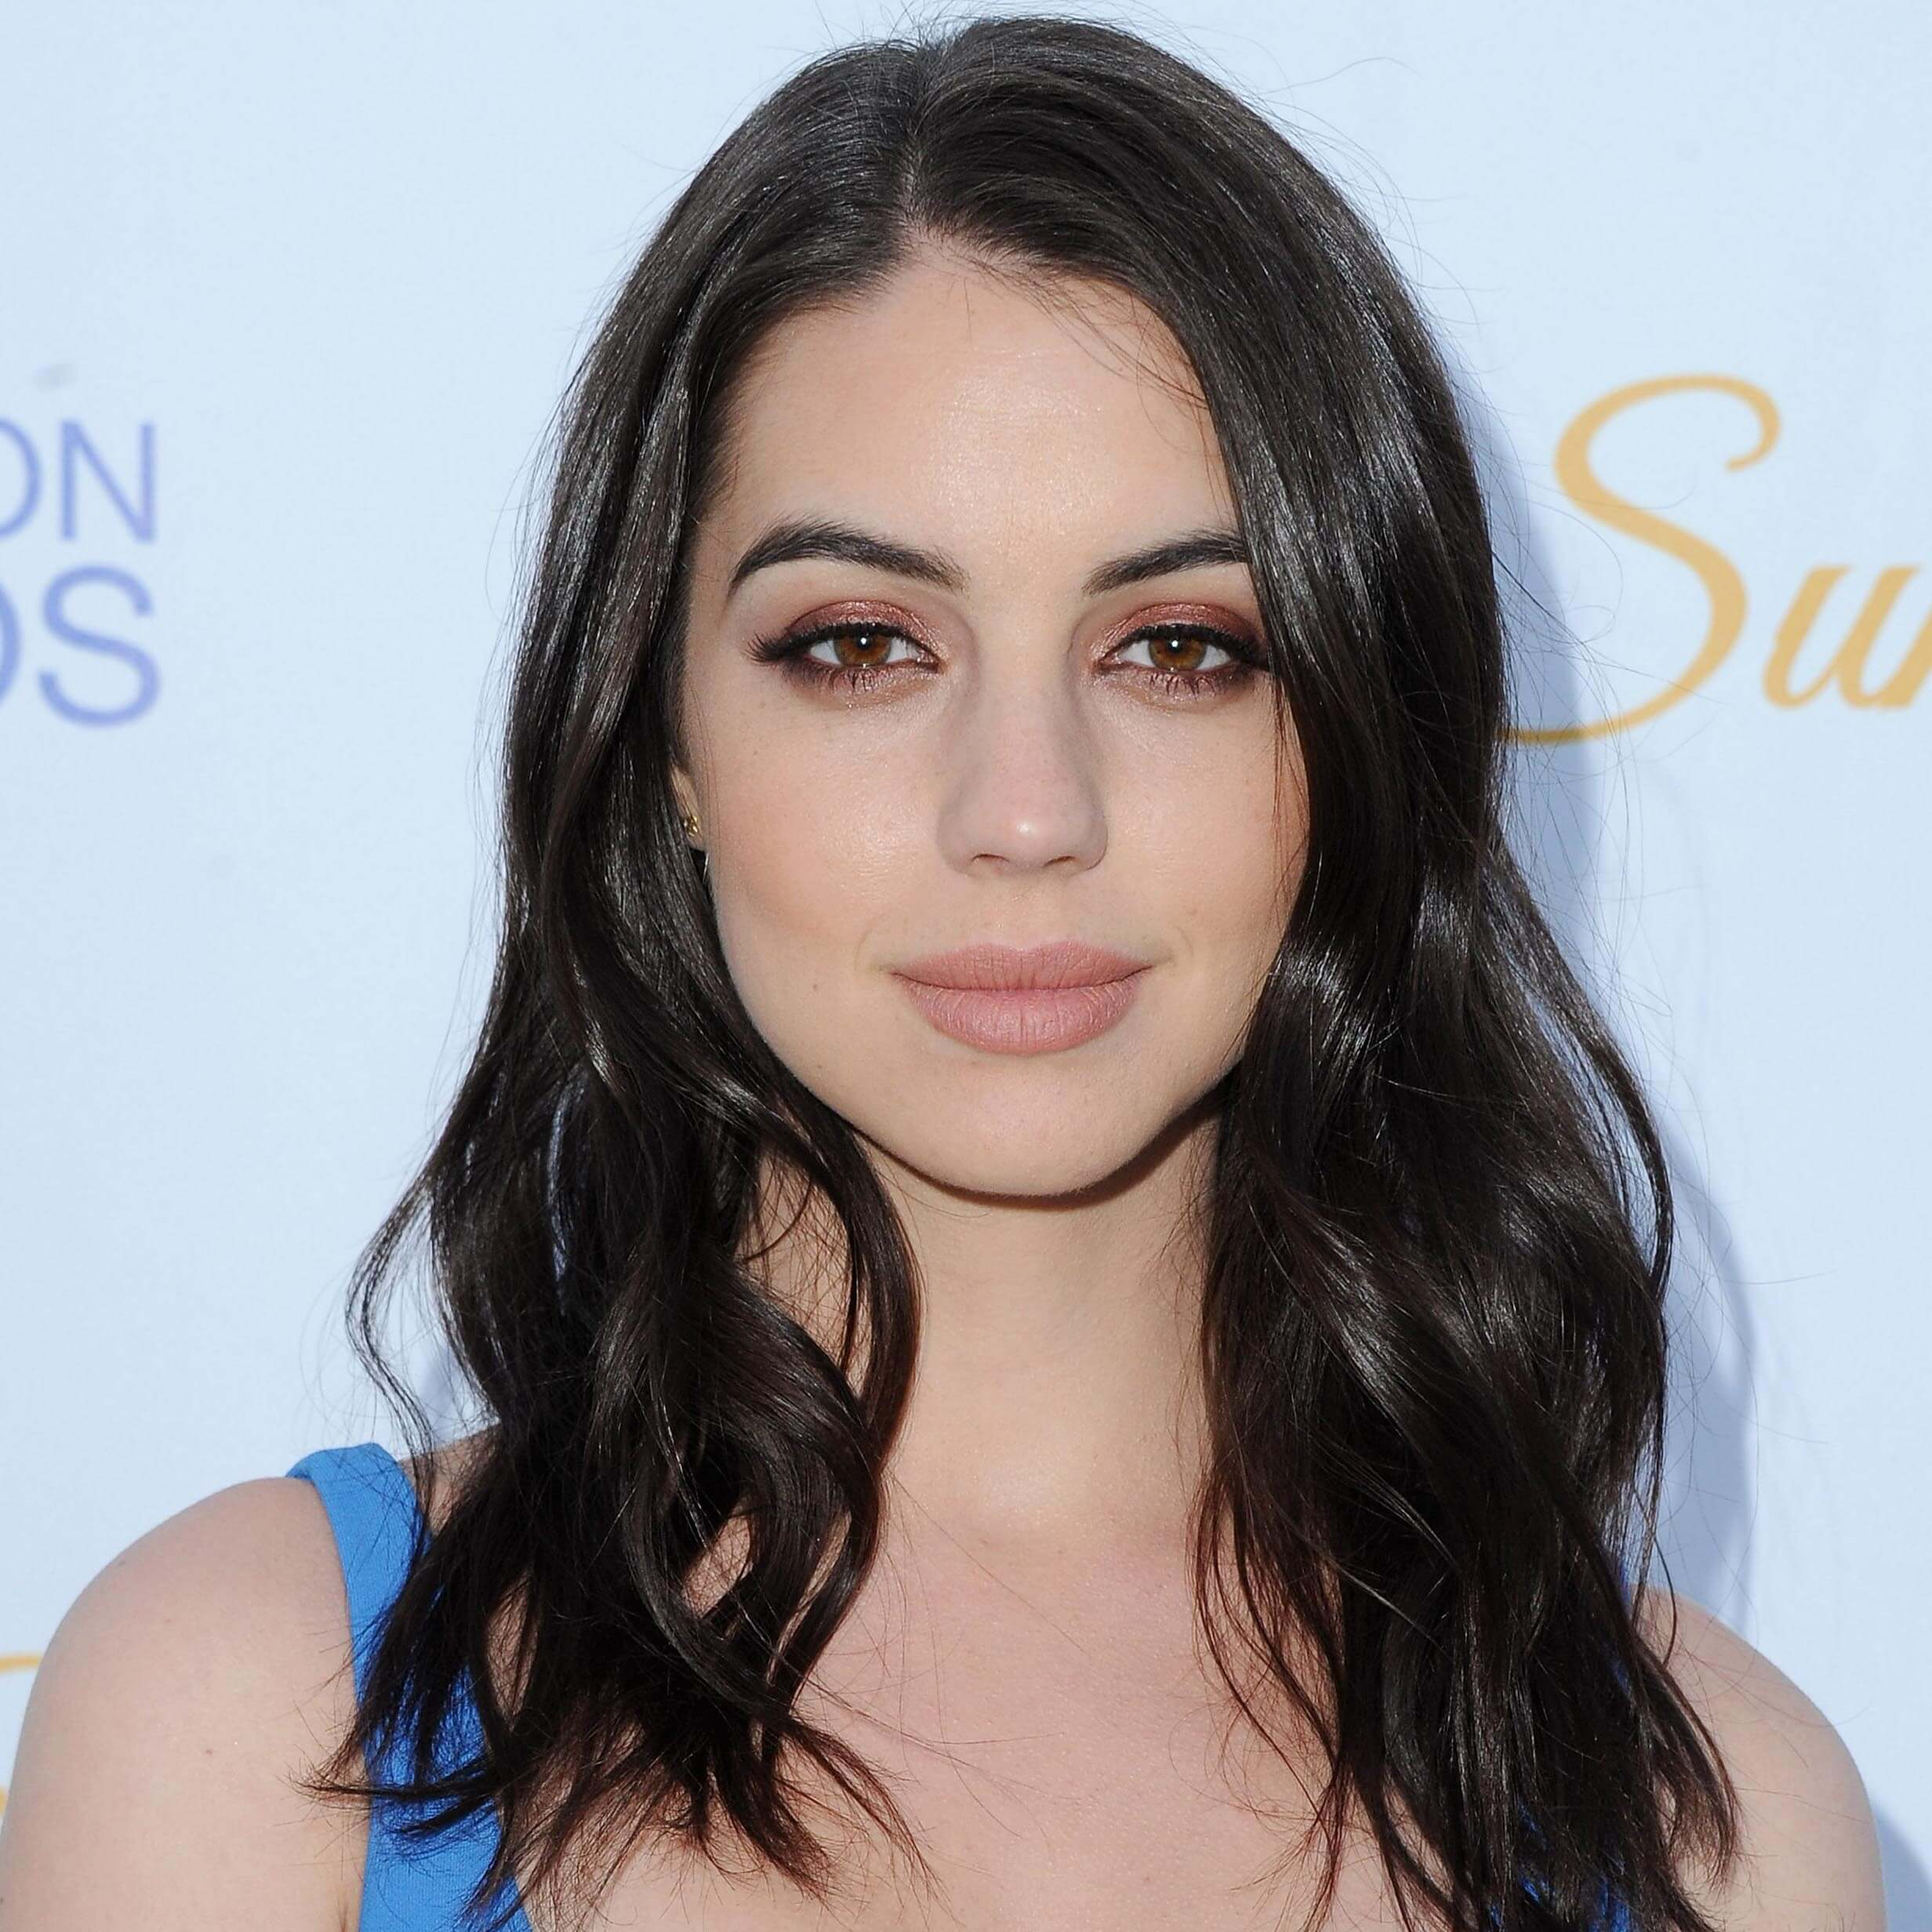 Pictures Adelaide Kane naked (74 photos), Topless, Bikini, Twitter, braless 2018